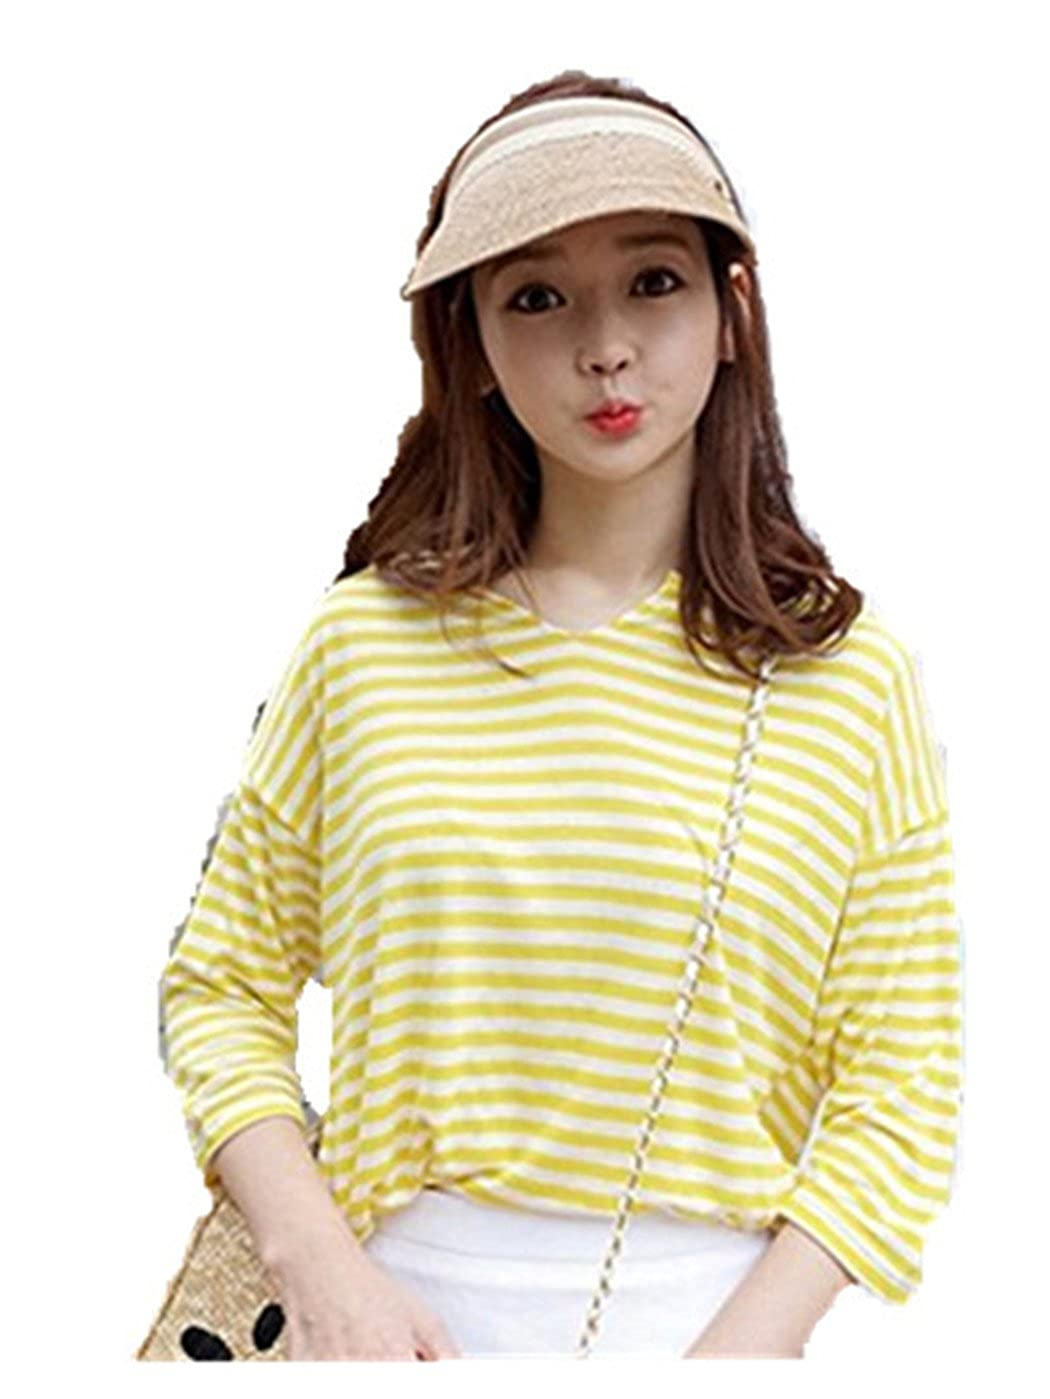 Leisial Women Girls Sun Hat Solid Color Outdoor Baseball Sports Cap Bowknot Summer Visor Adjustable P2U170308SLGXC103